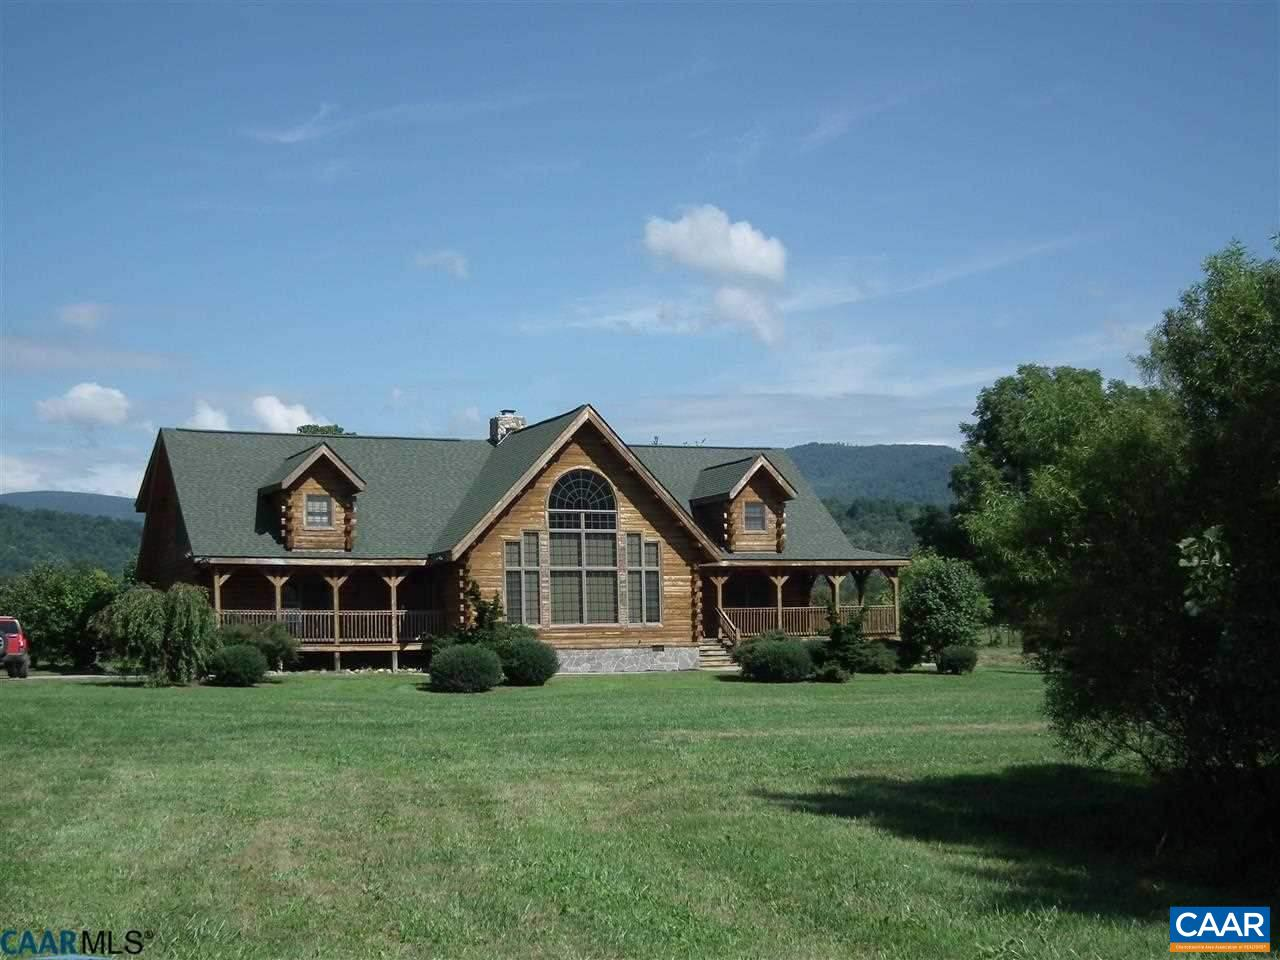 home for sale , MLS #535074, 2952 Old Blue Ridge Tpk